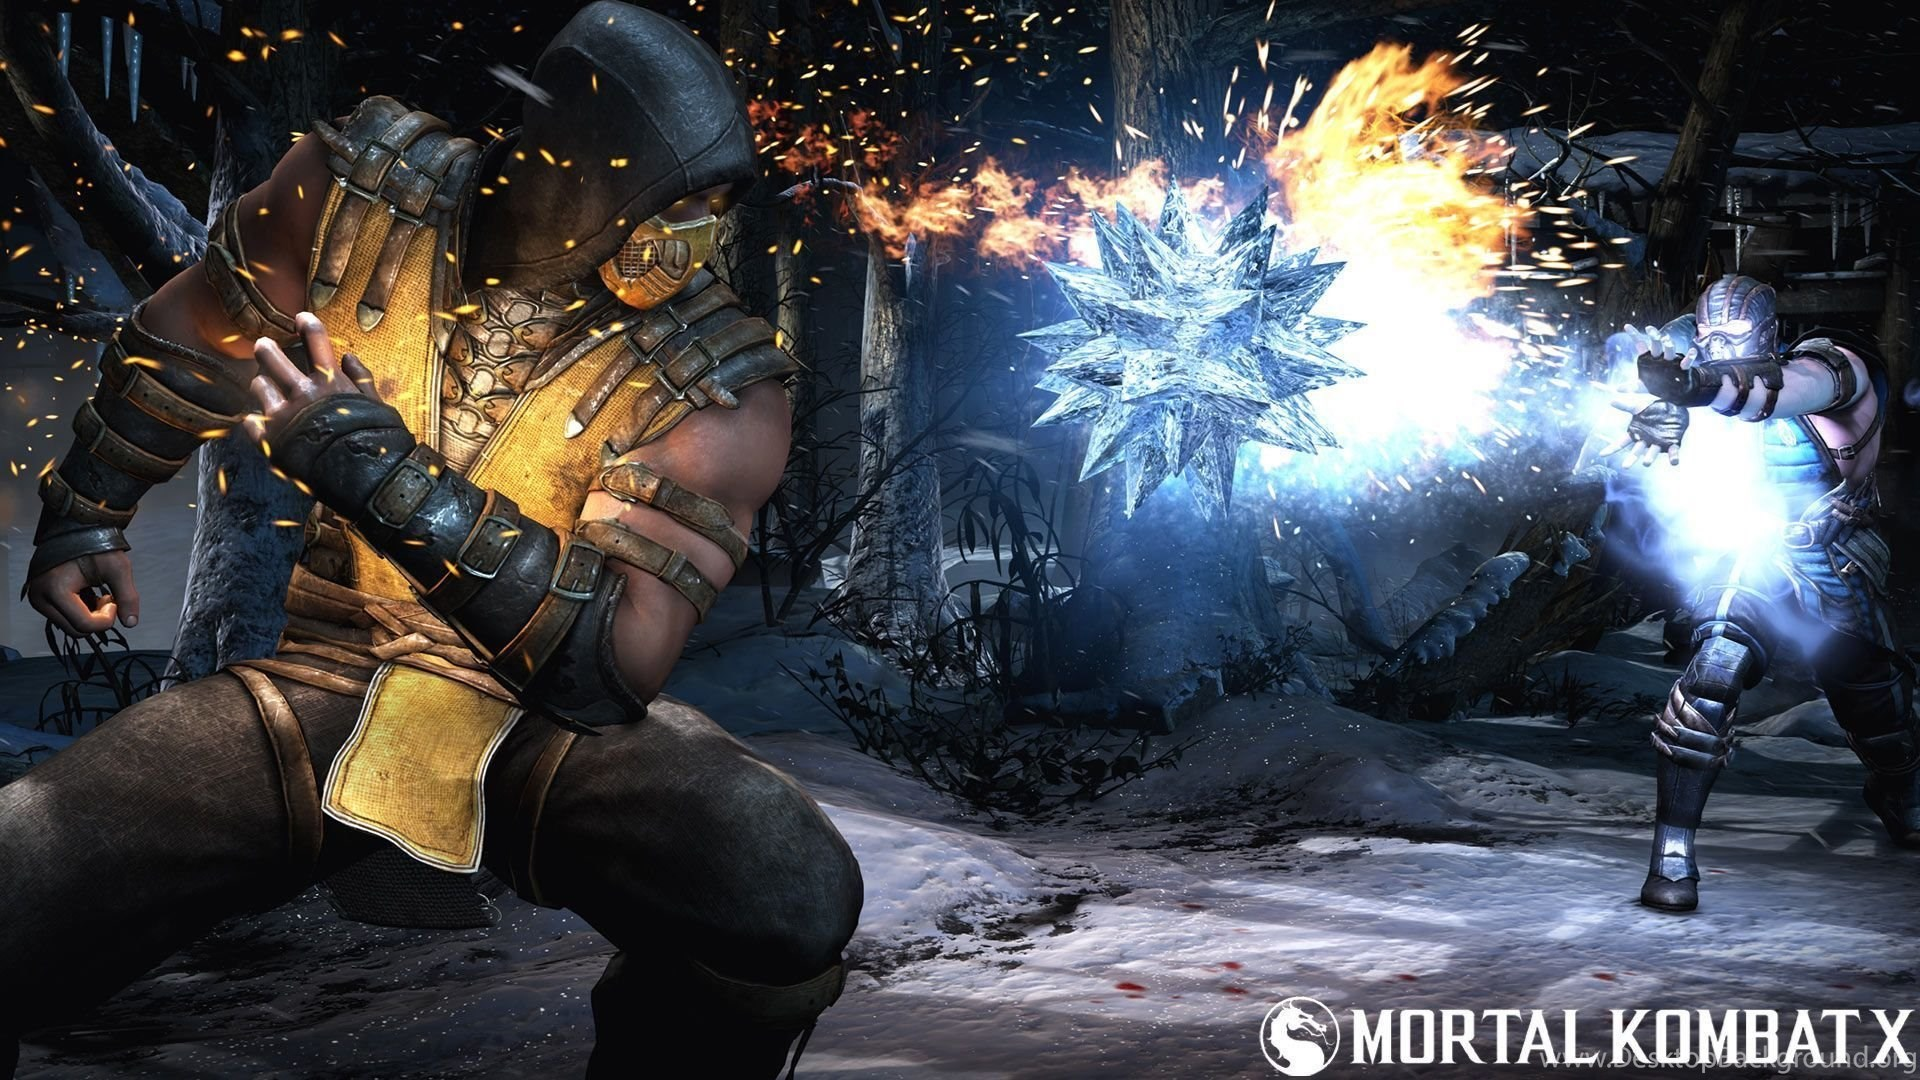 Mortal Kombat X Wallpapers Hd 1080p For Desktop Desktop Background